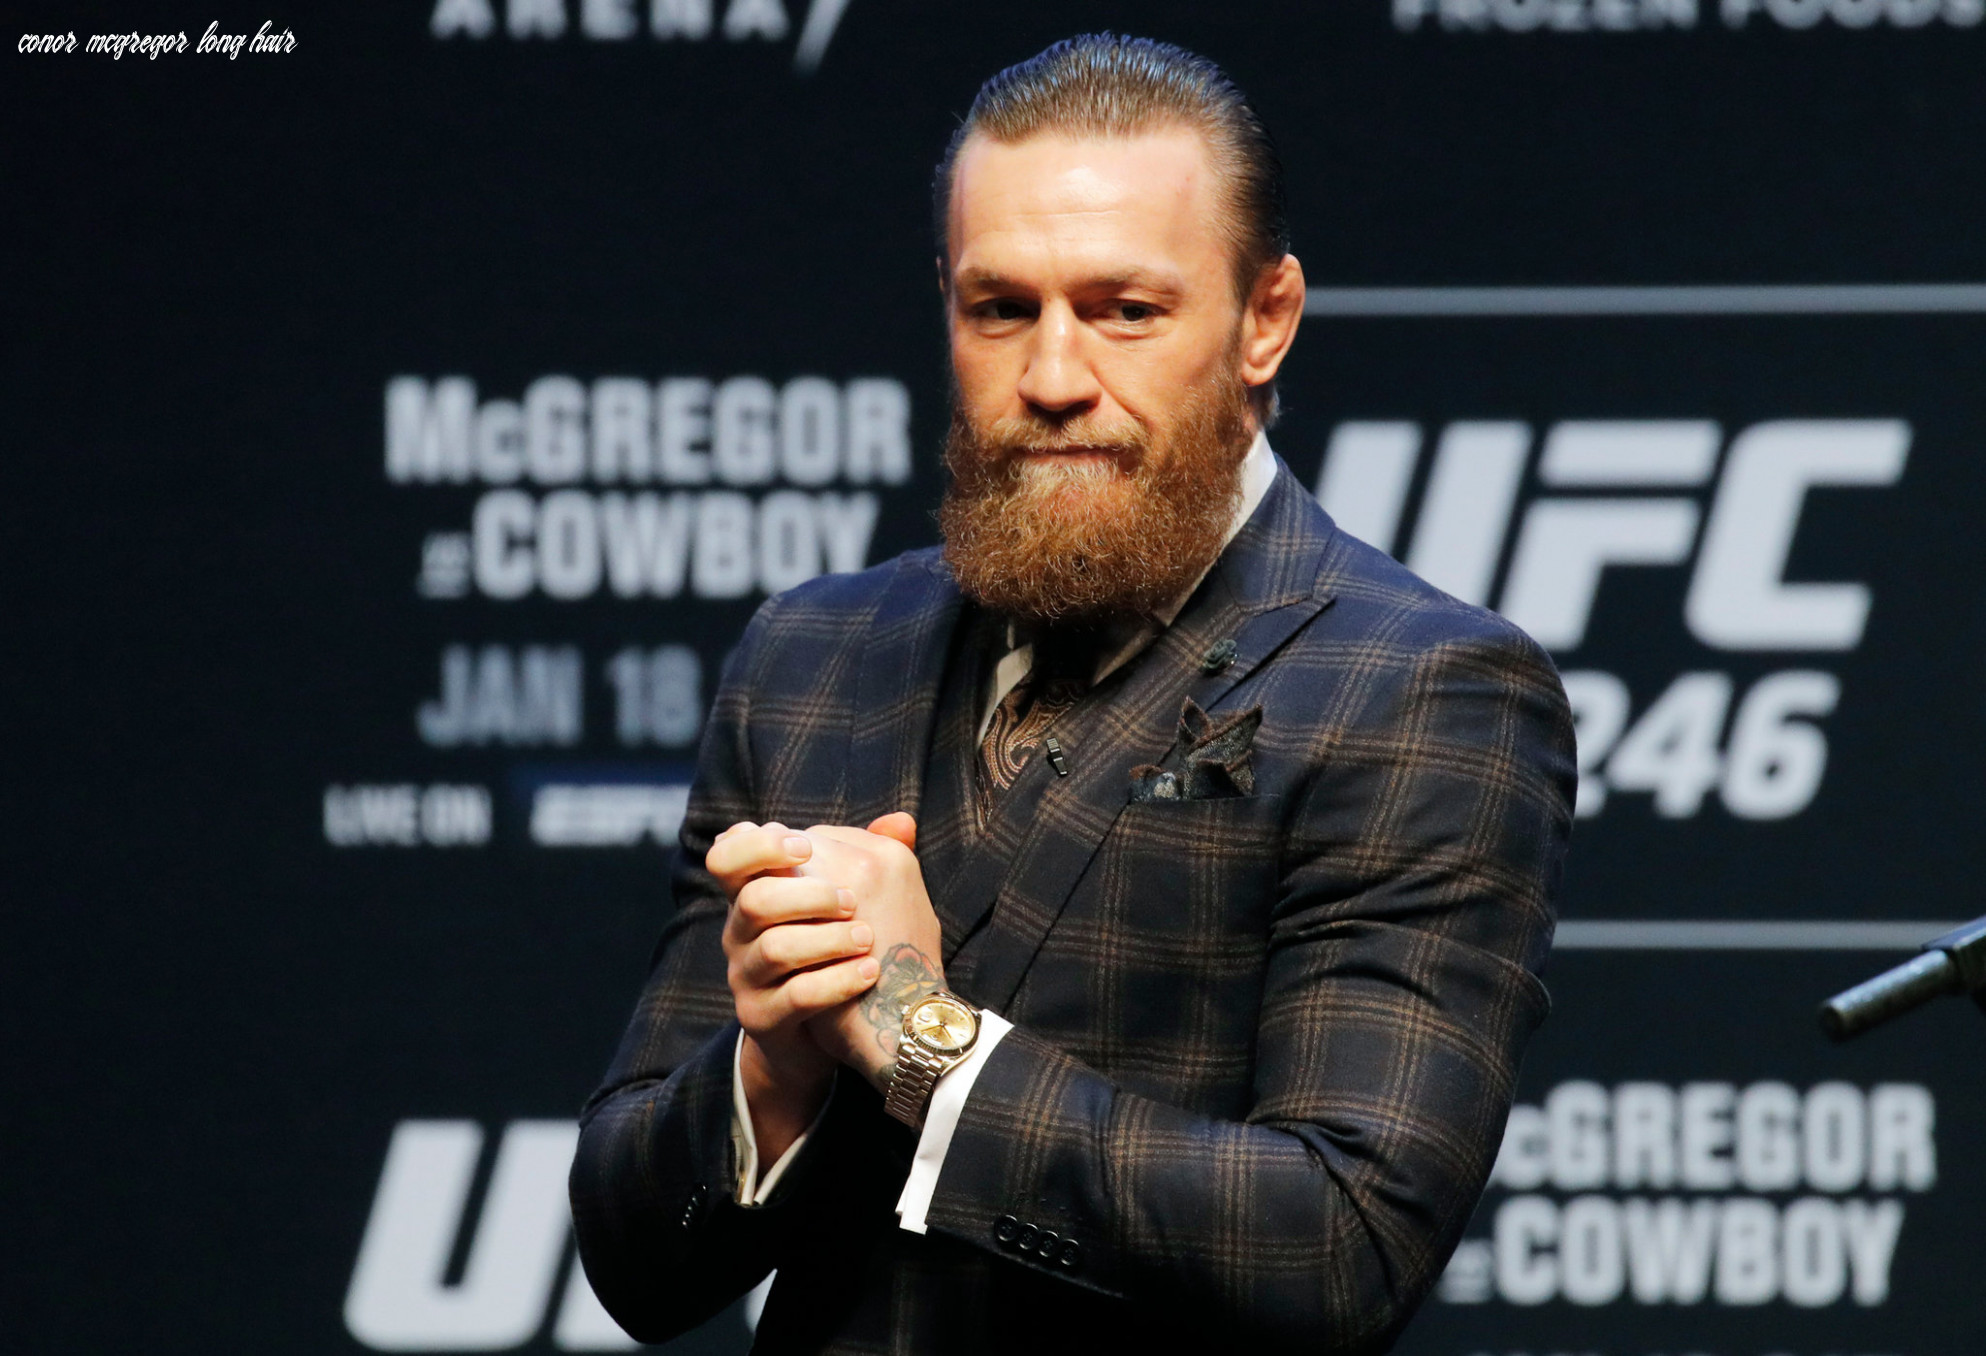 Conor mcgregor and u f c attempt a shift away from heel status